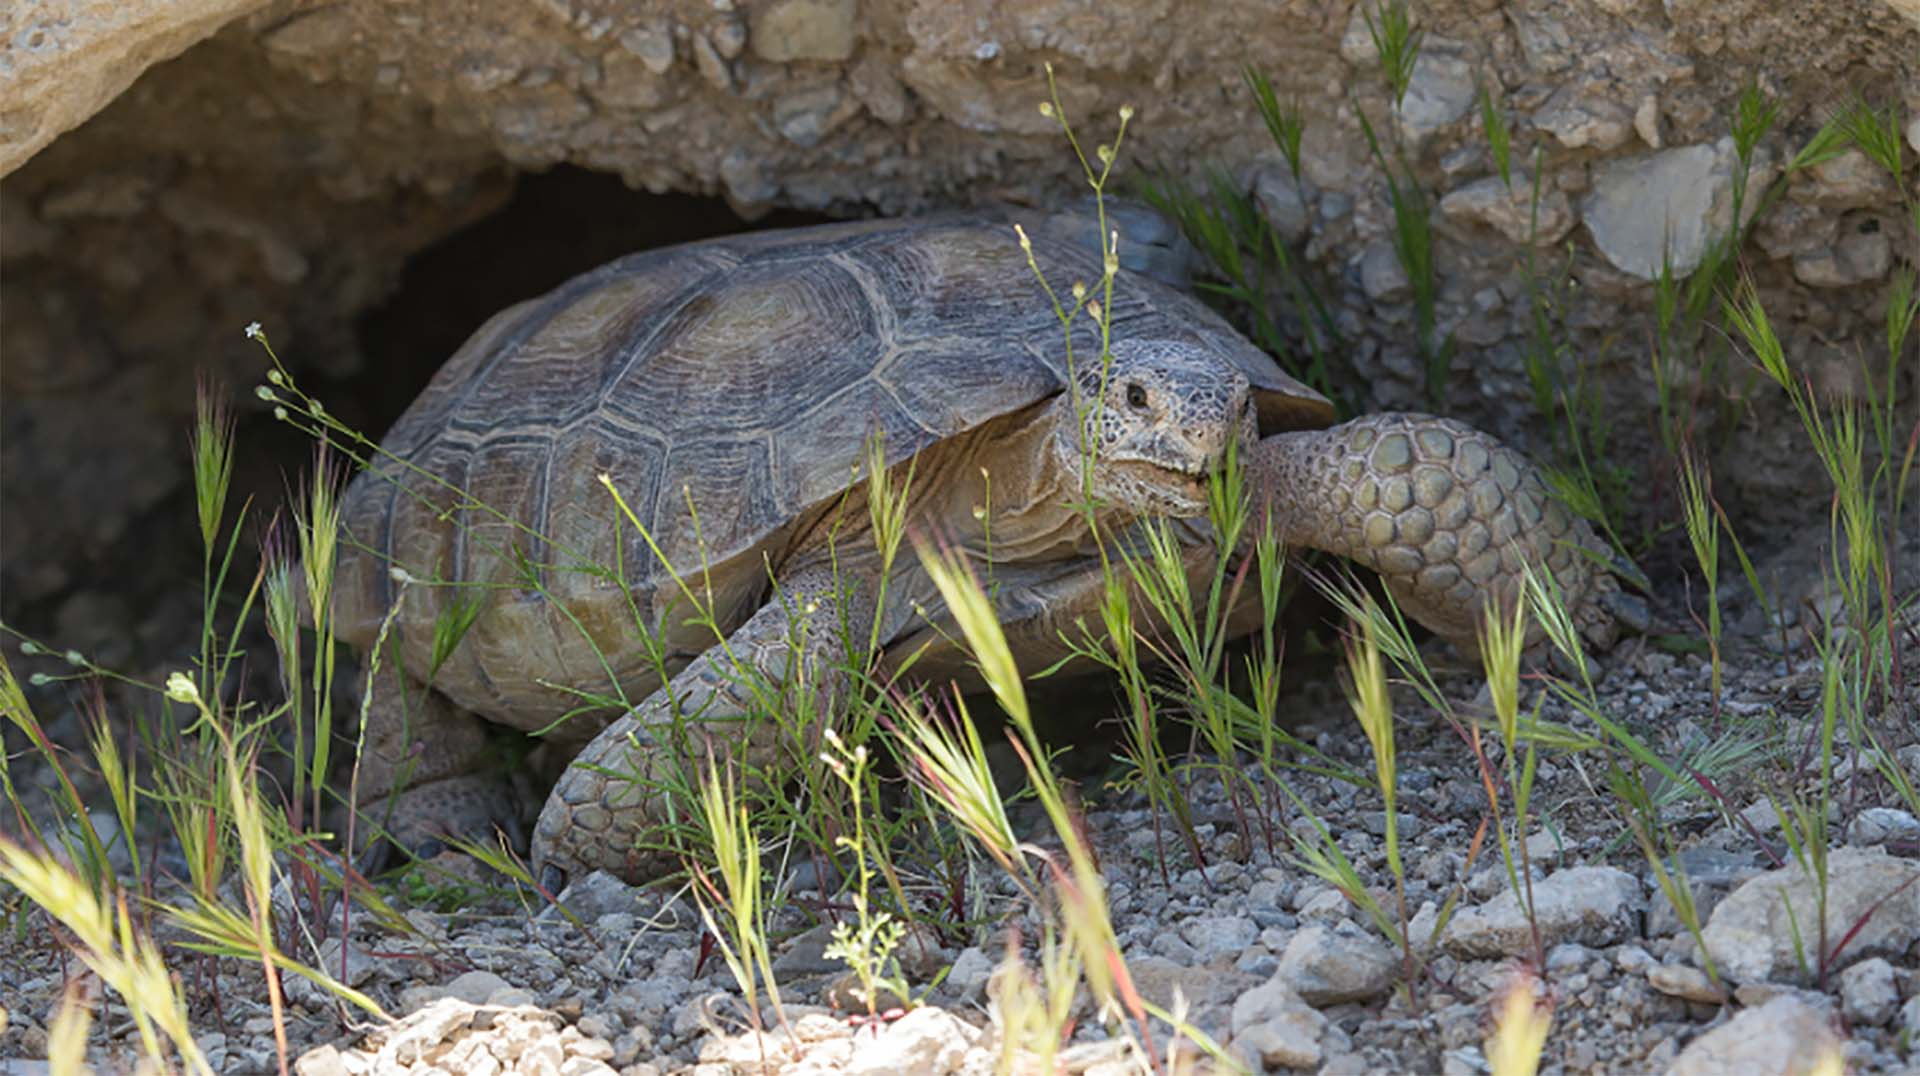 A desert tortoises tucked along a rock in the grass and rocks.